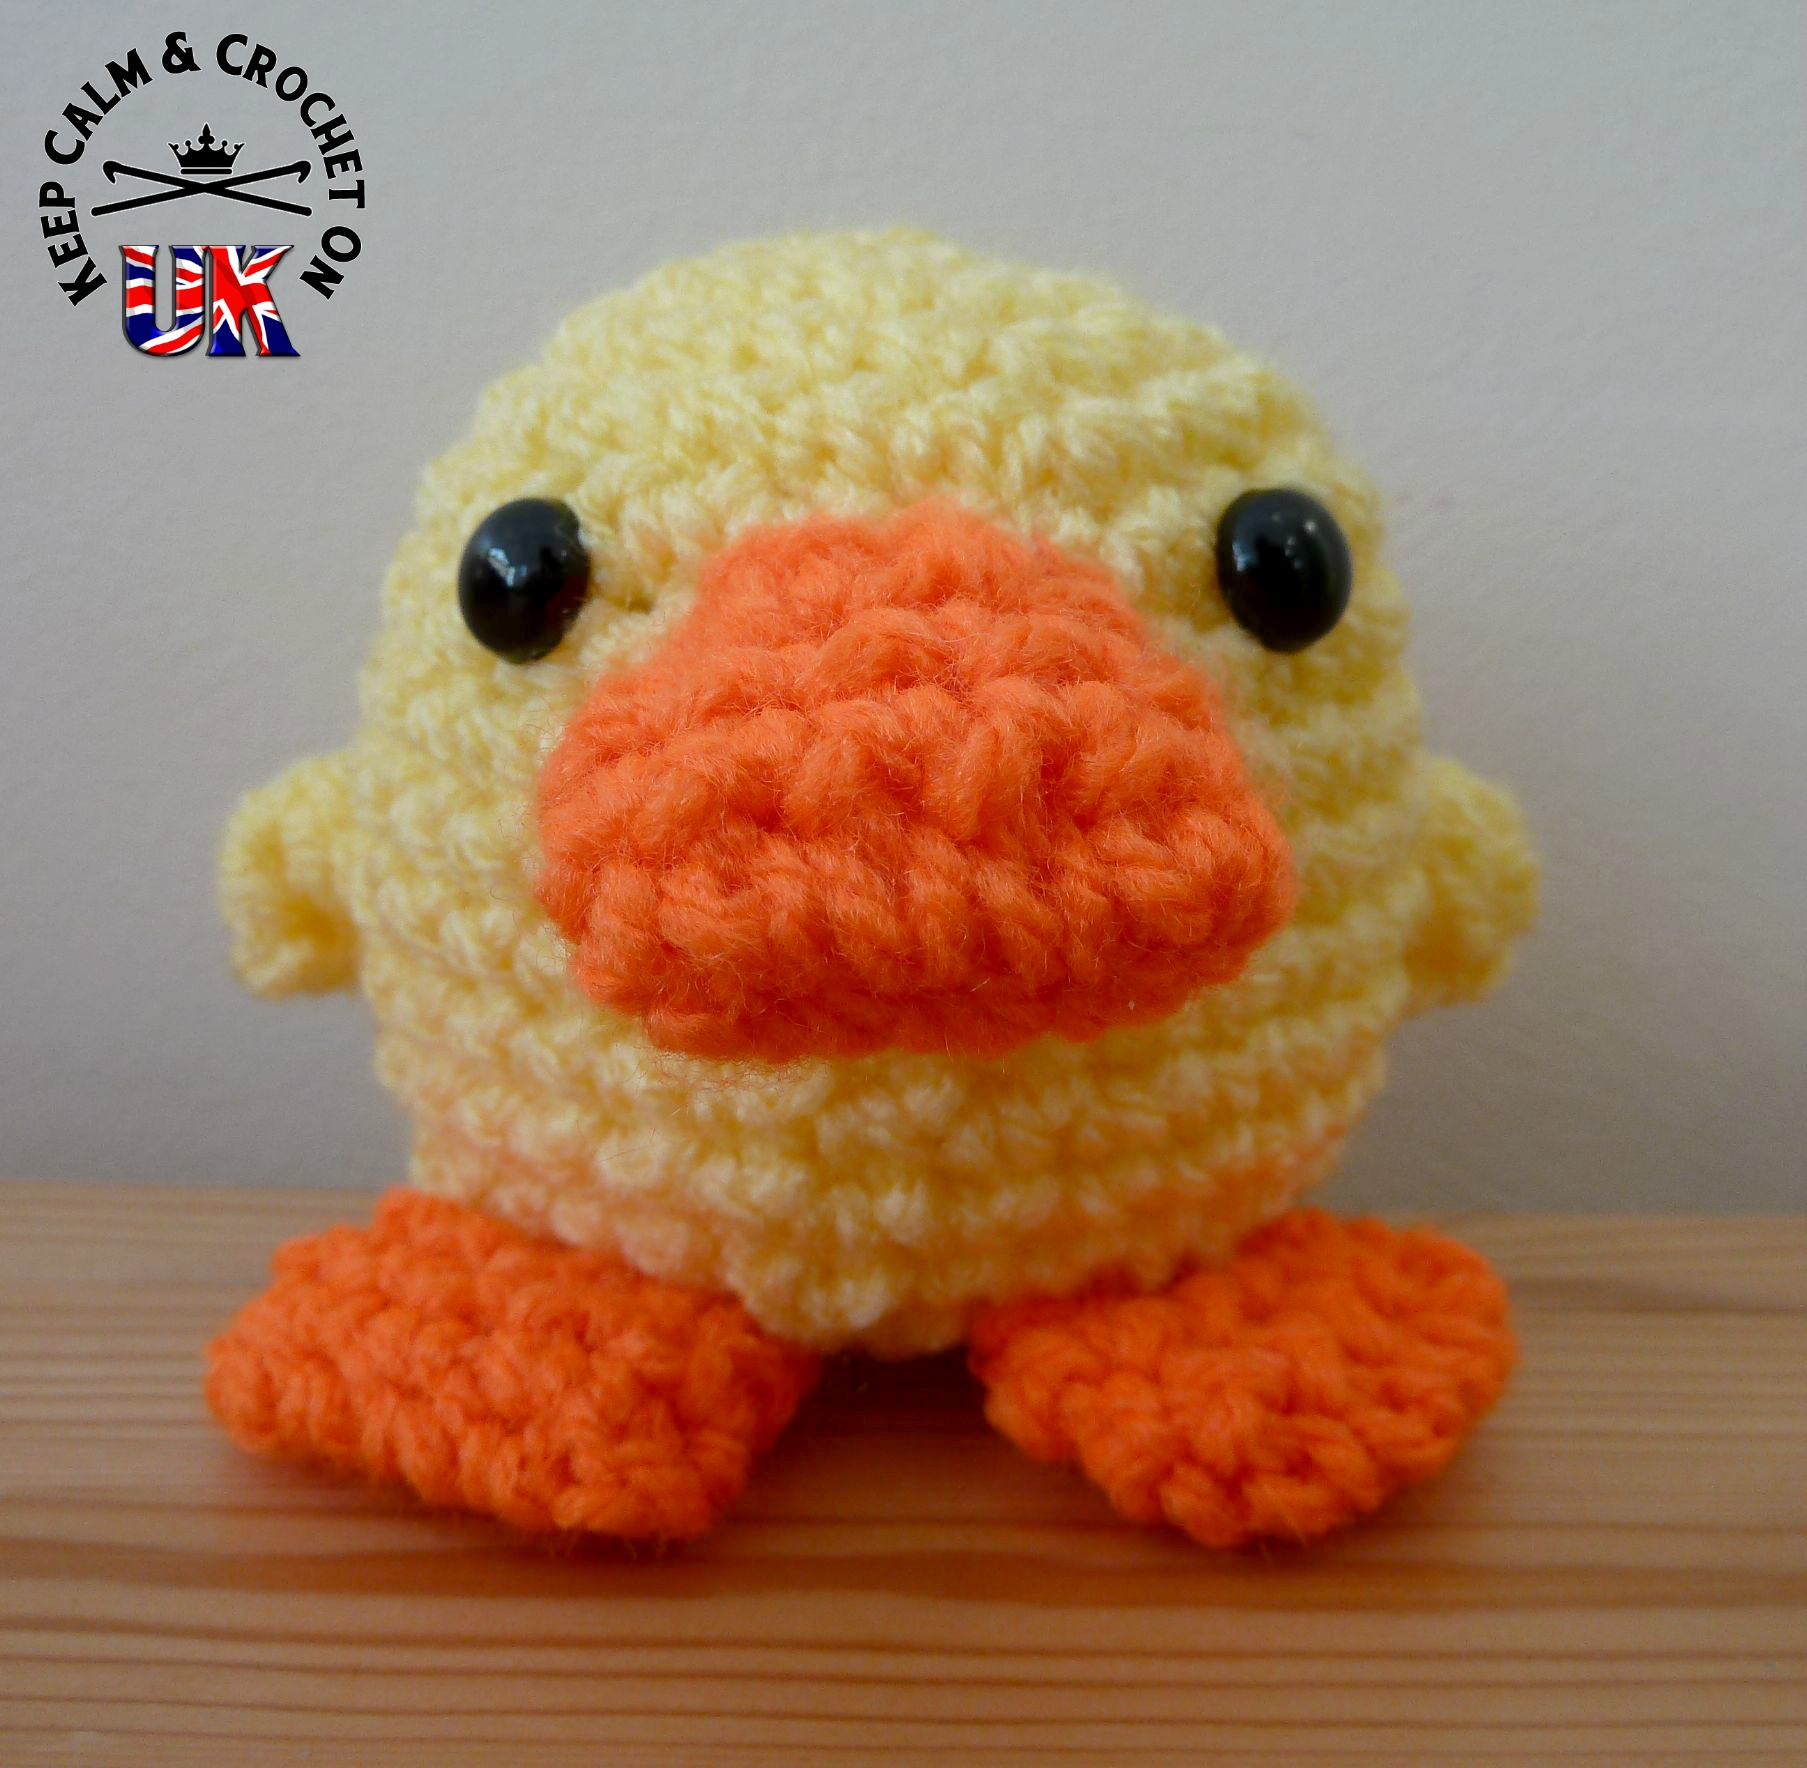 Amigurumi Today - Posts | Facebook | 1768x1807